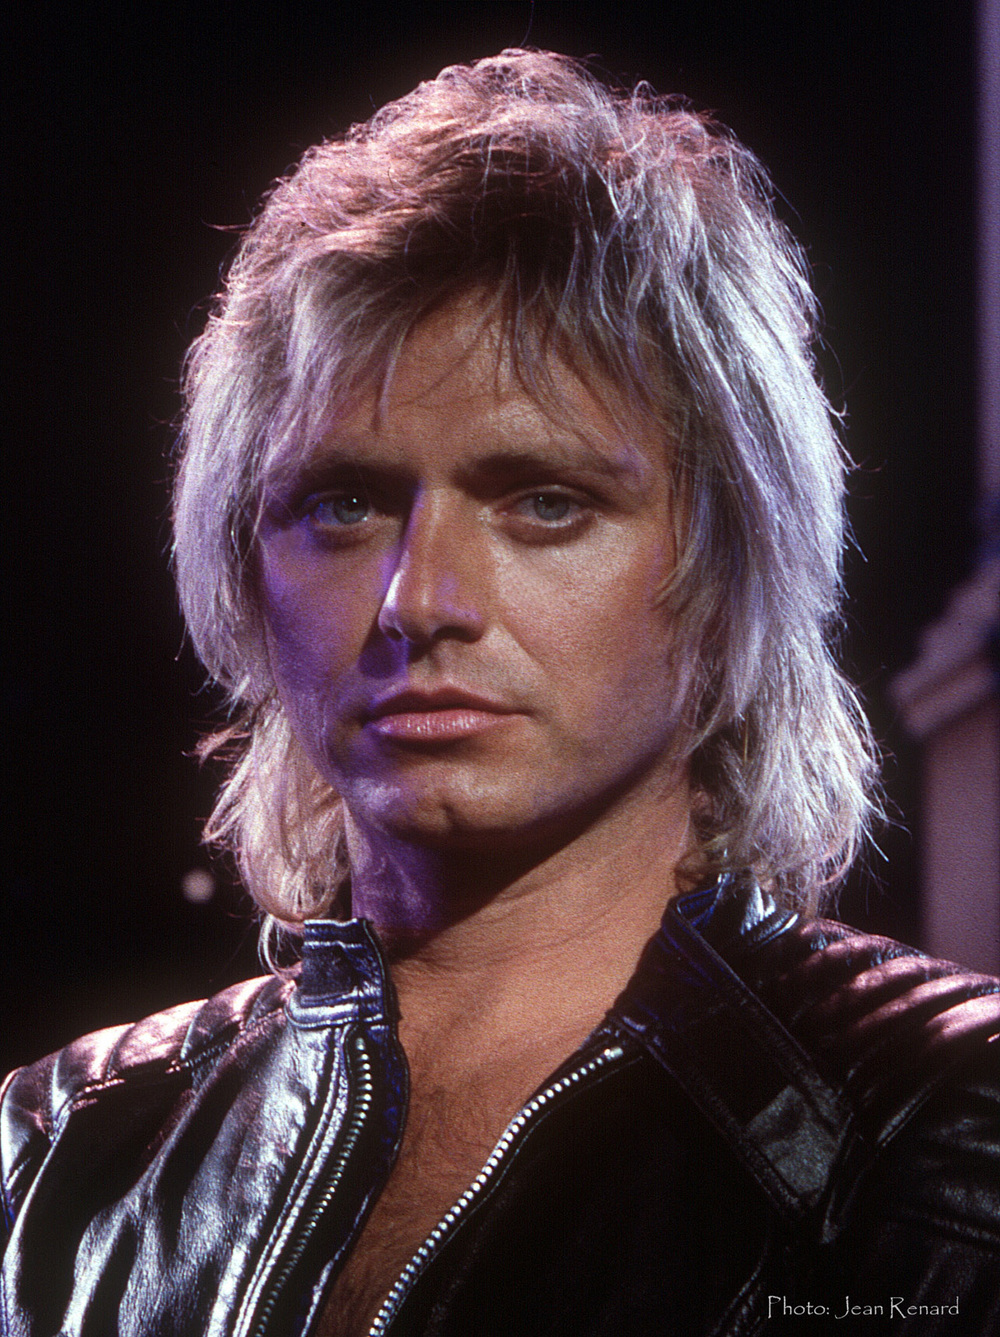 My dearest friend Benjamin Orr